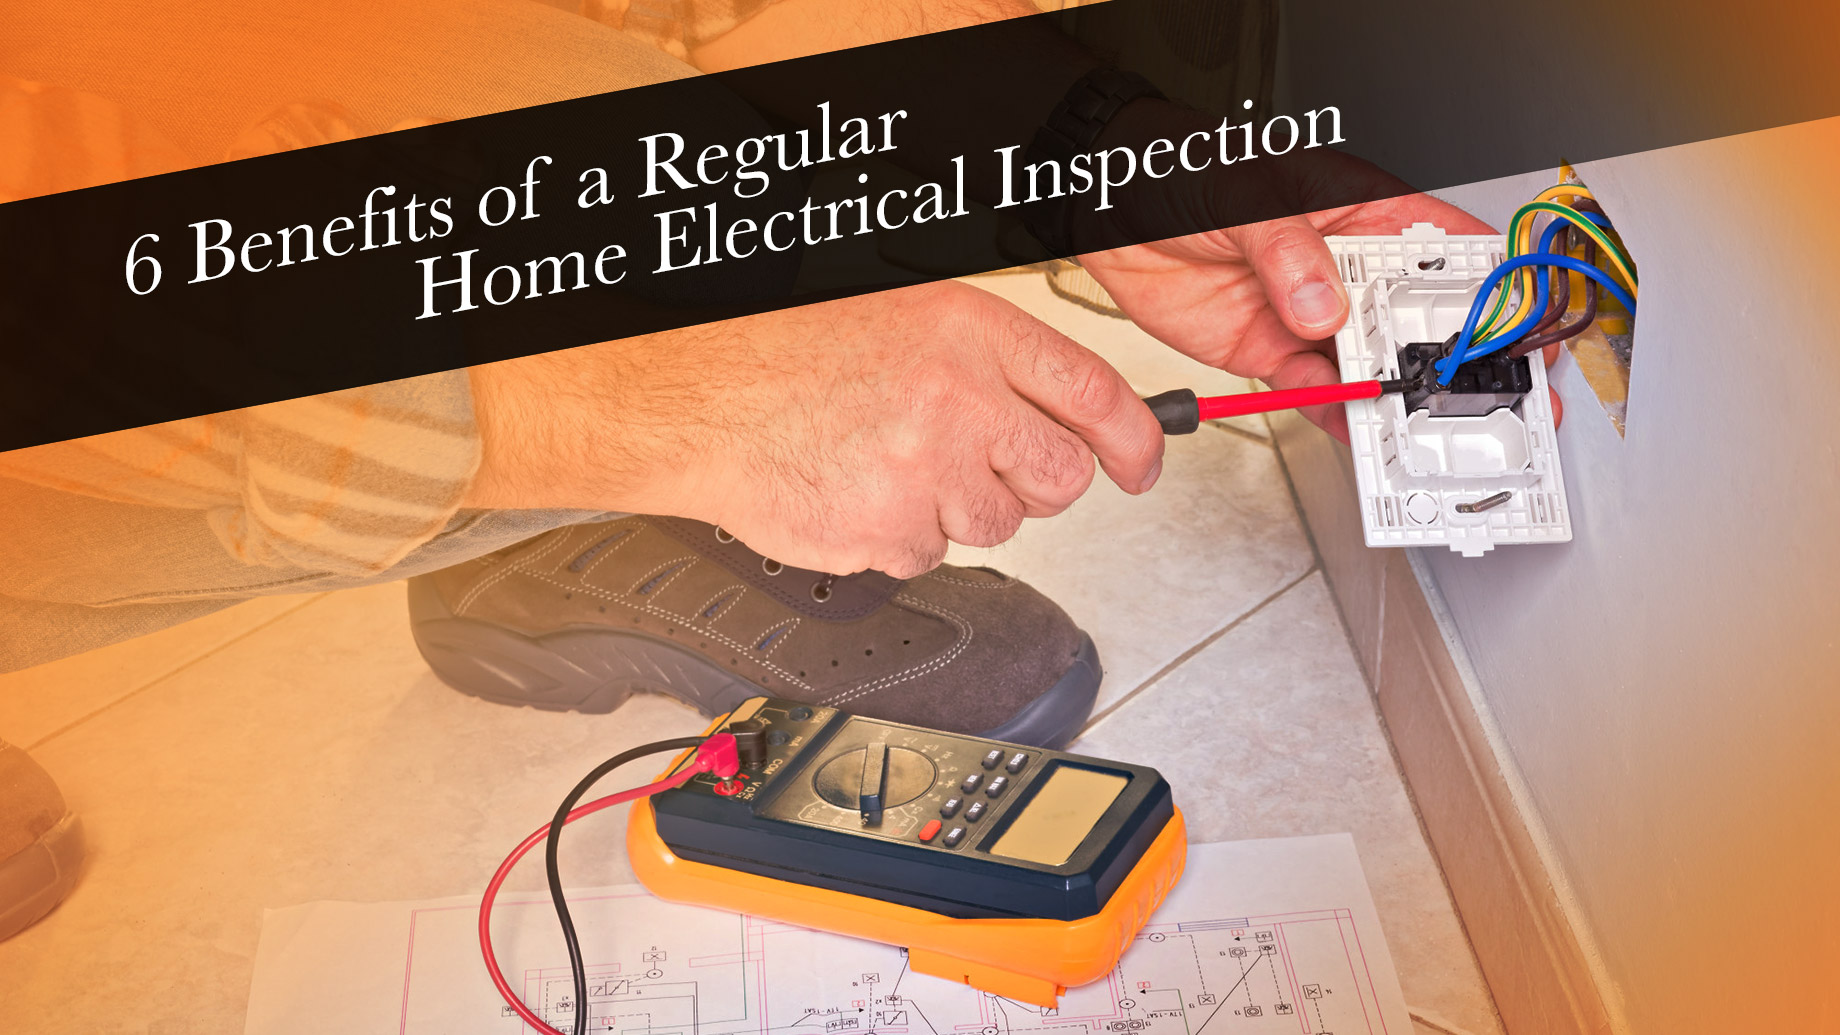 6 Benefits of a Regular Home Electrical Inspection